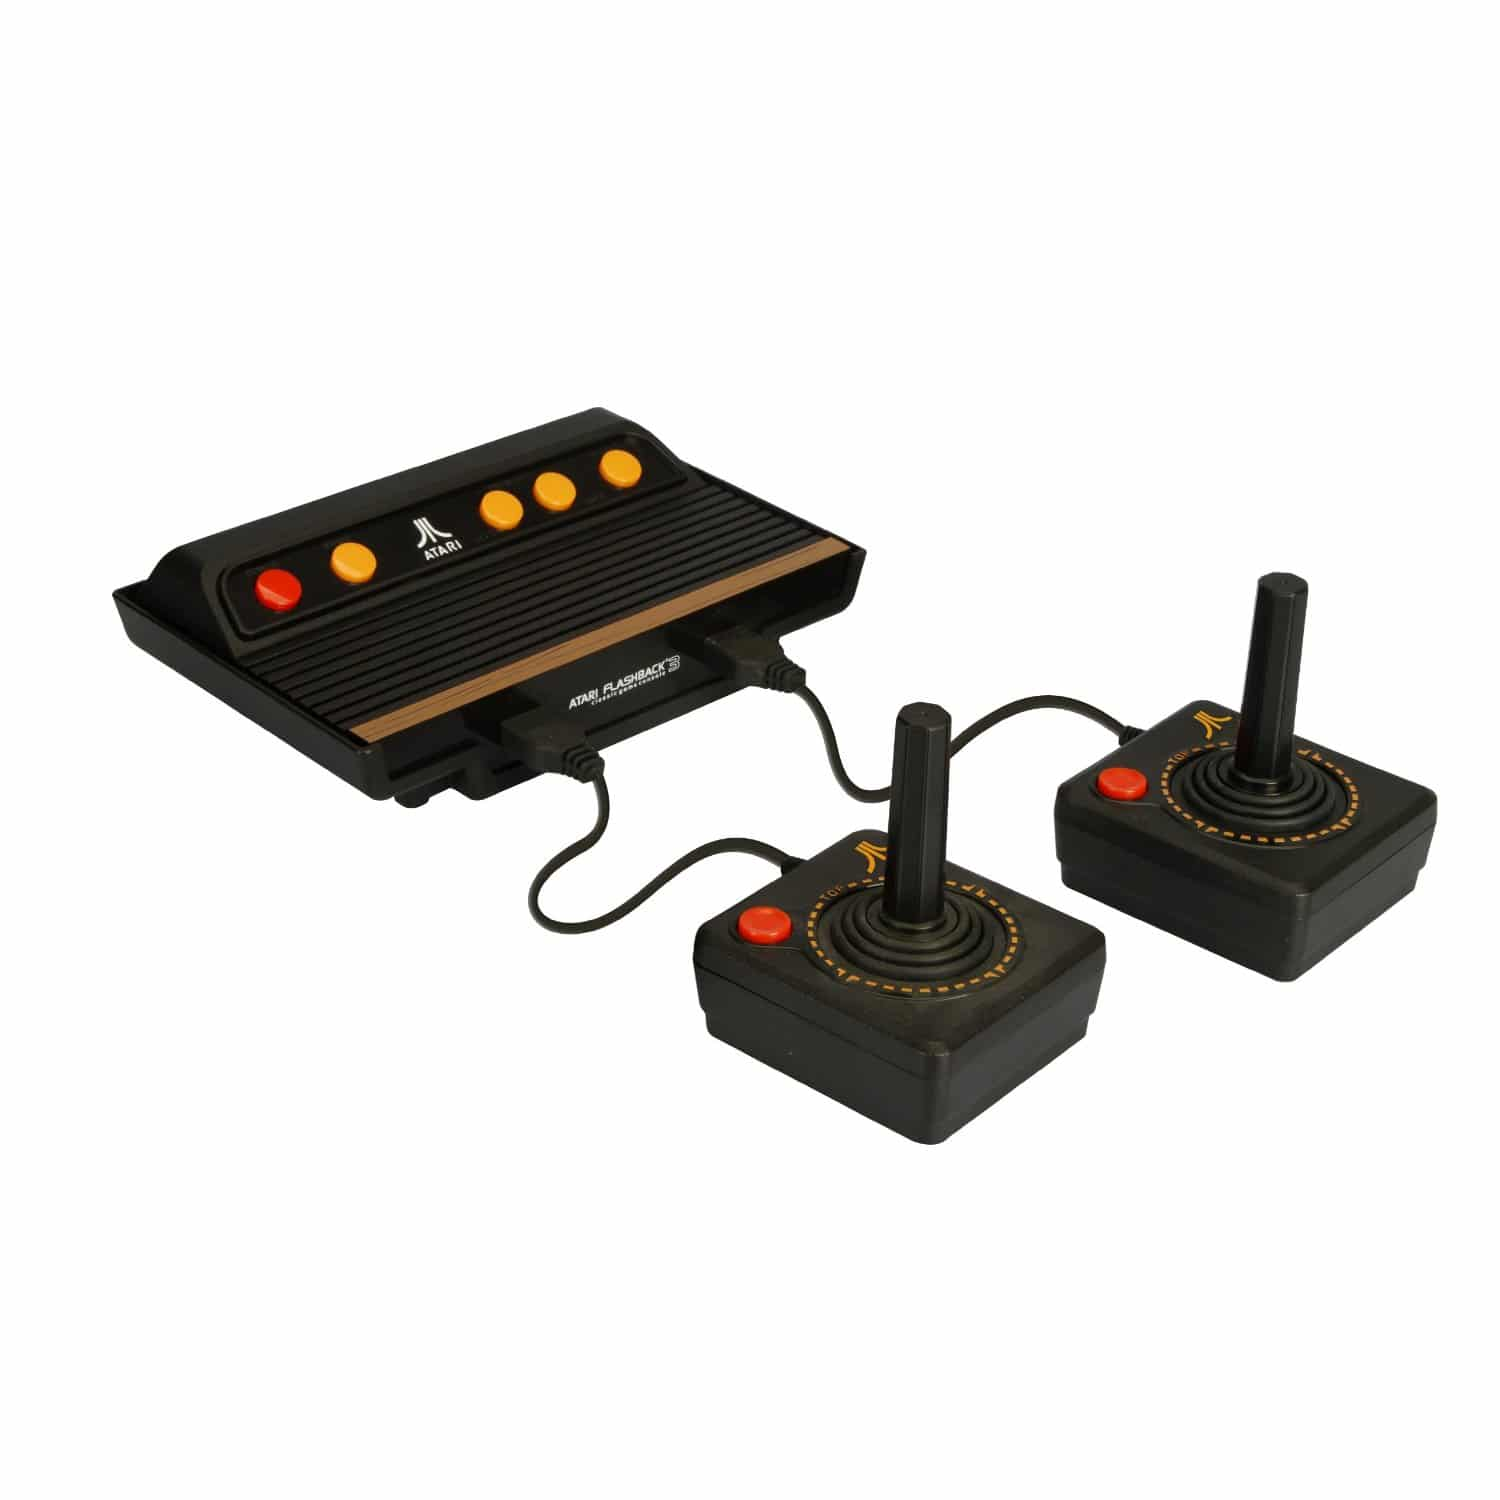 Atari Flashback 3 Gaming Console